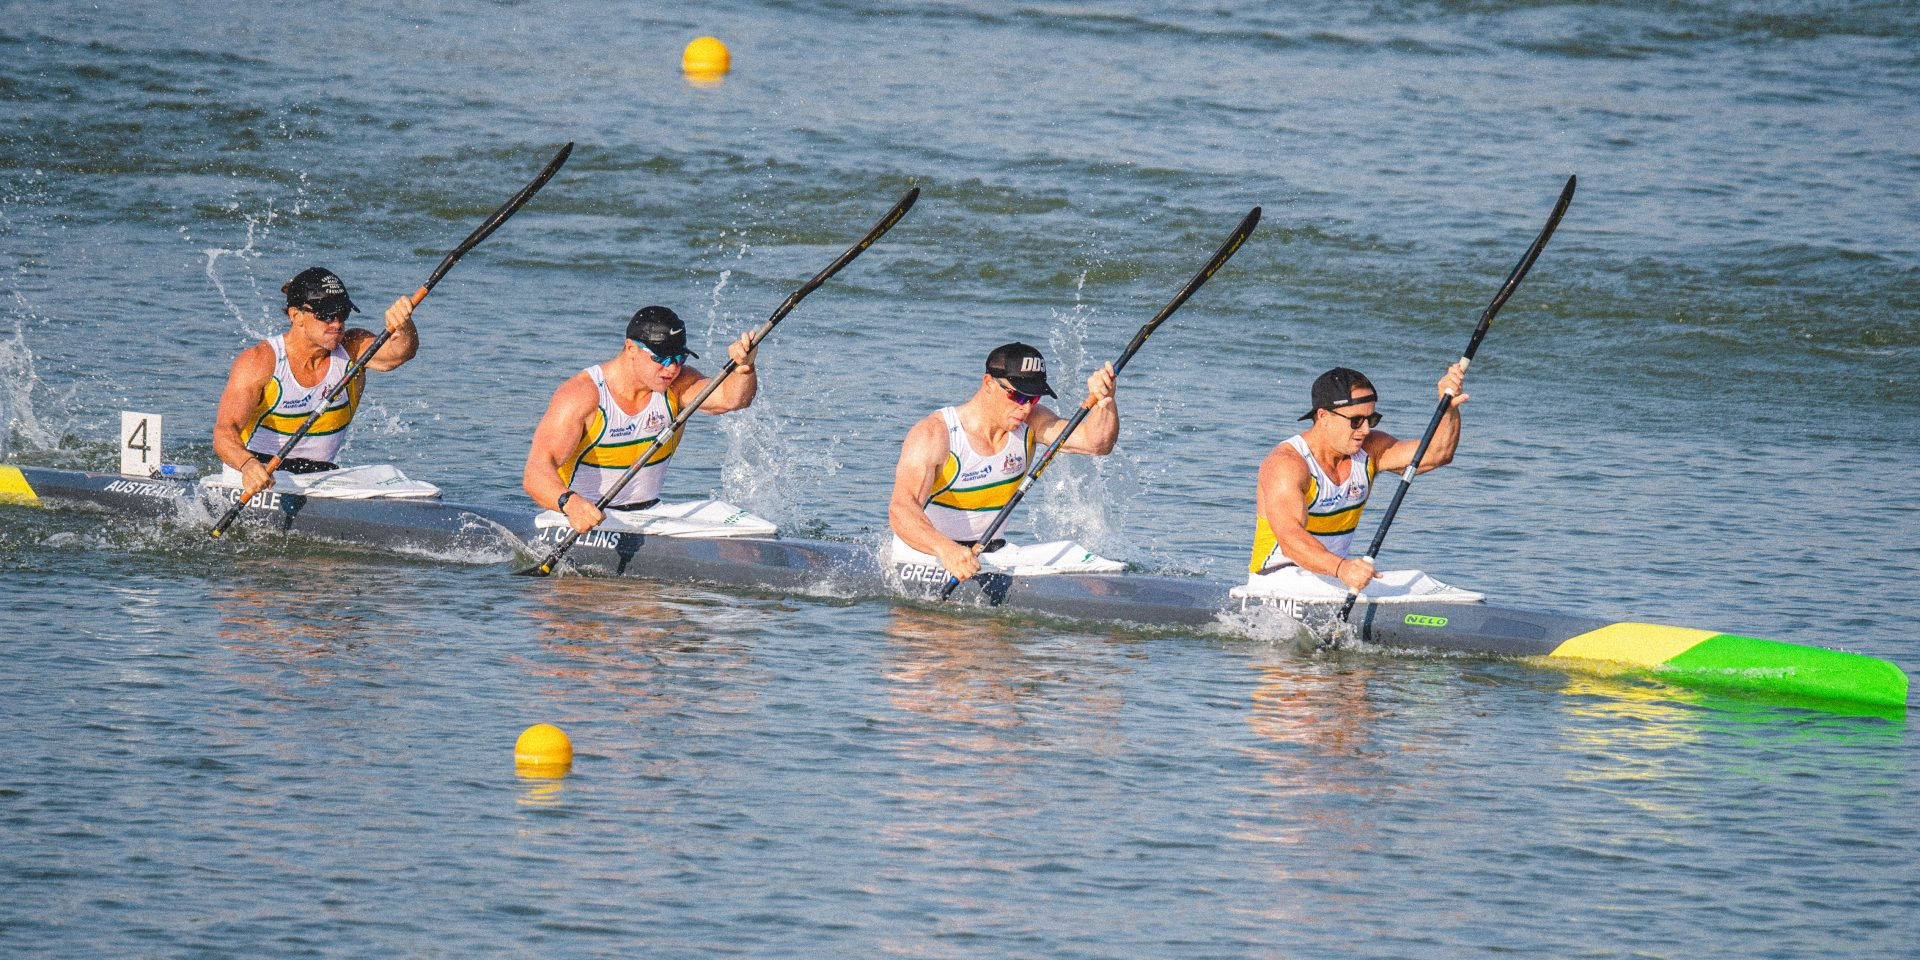 Lachlan Tame, Tom Green, Jackson Collins and Matt Goble, Australia Mens K4 500mtr  International Canoe Federation World Championships, Szeged, Hungary. Saturday 24 August 2019  © Copyright photo Steve McArthur / Paddle Australia